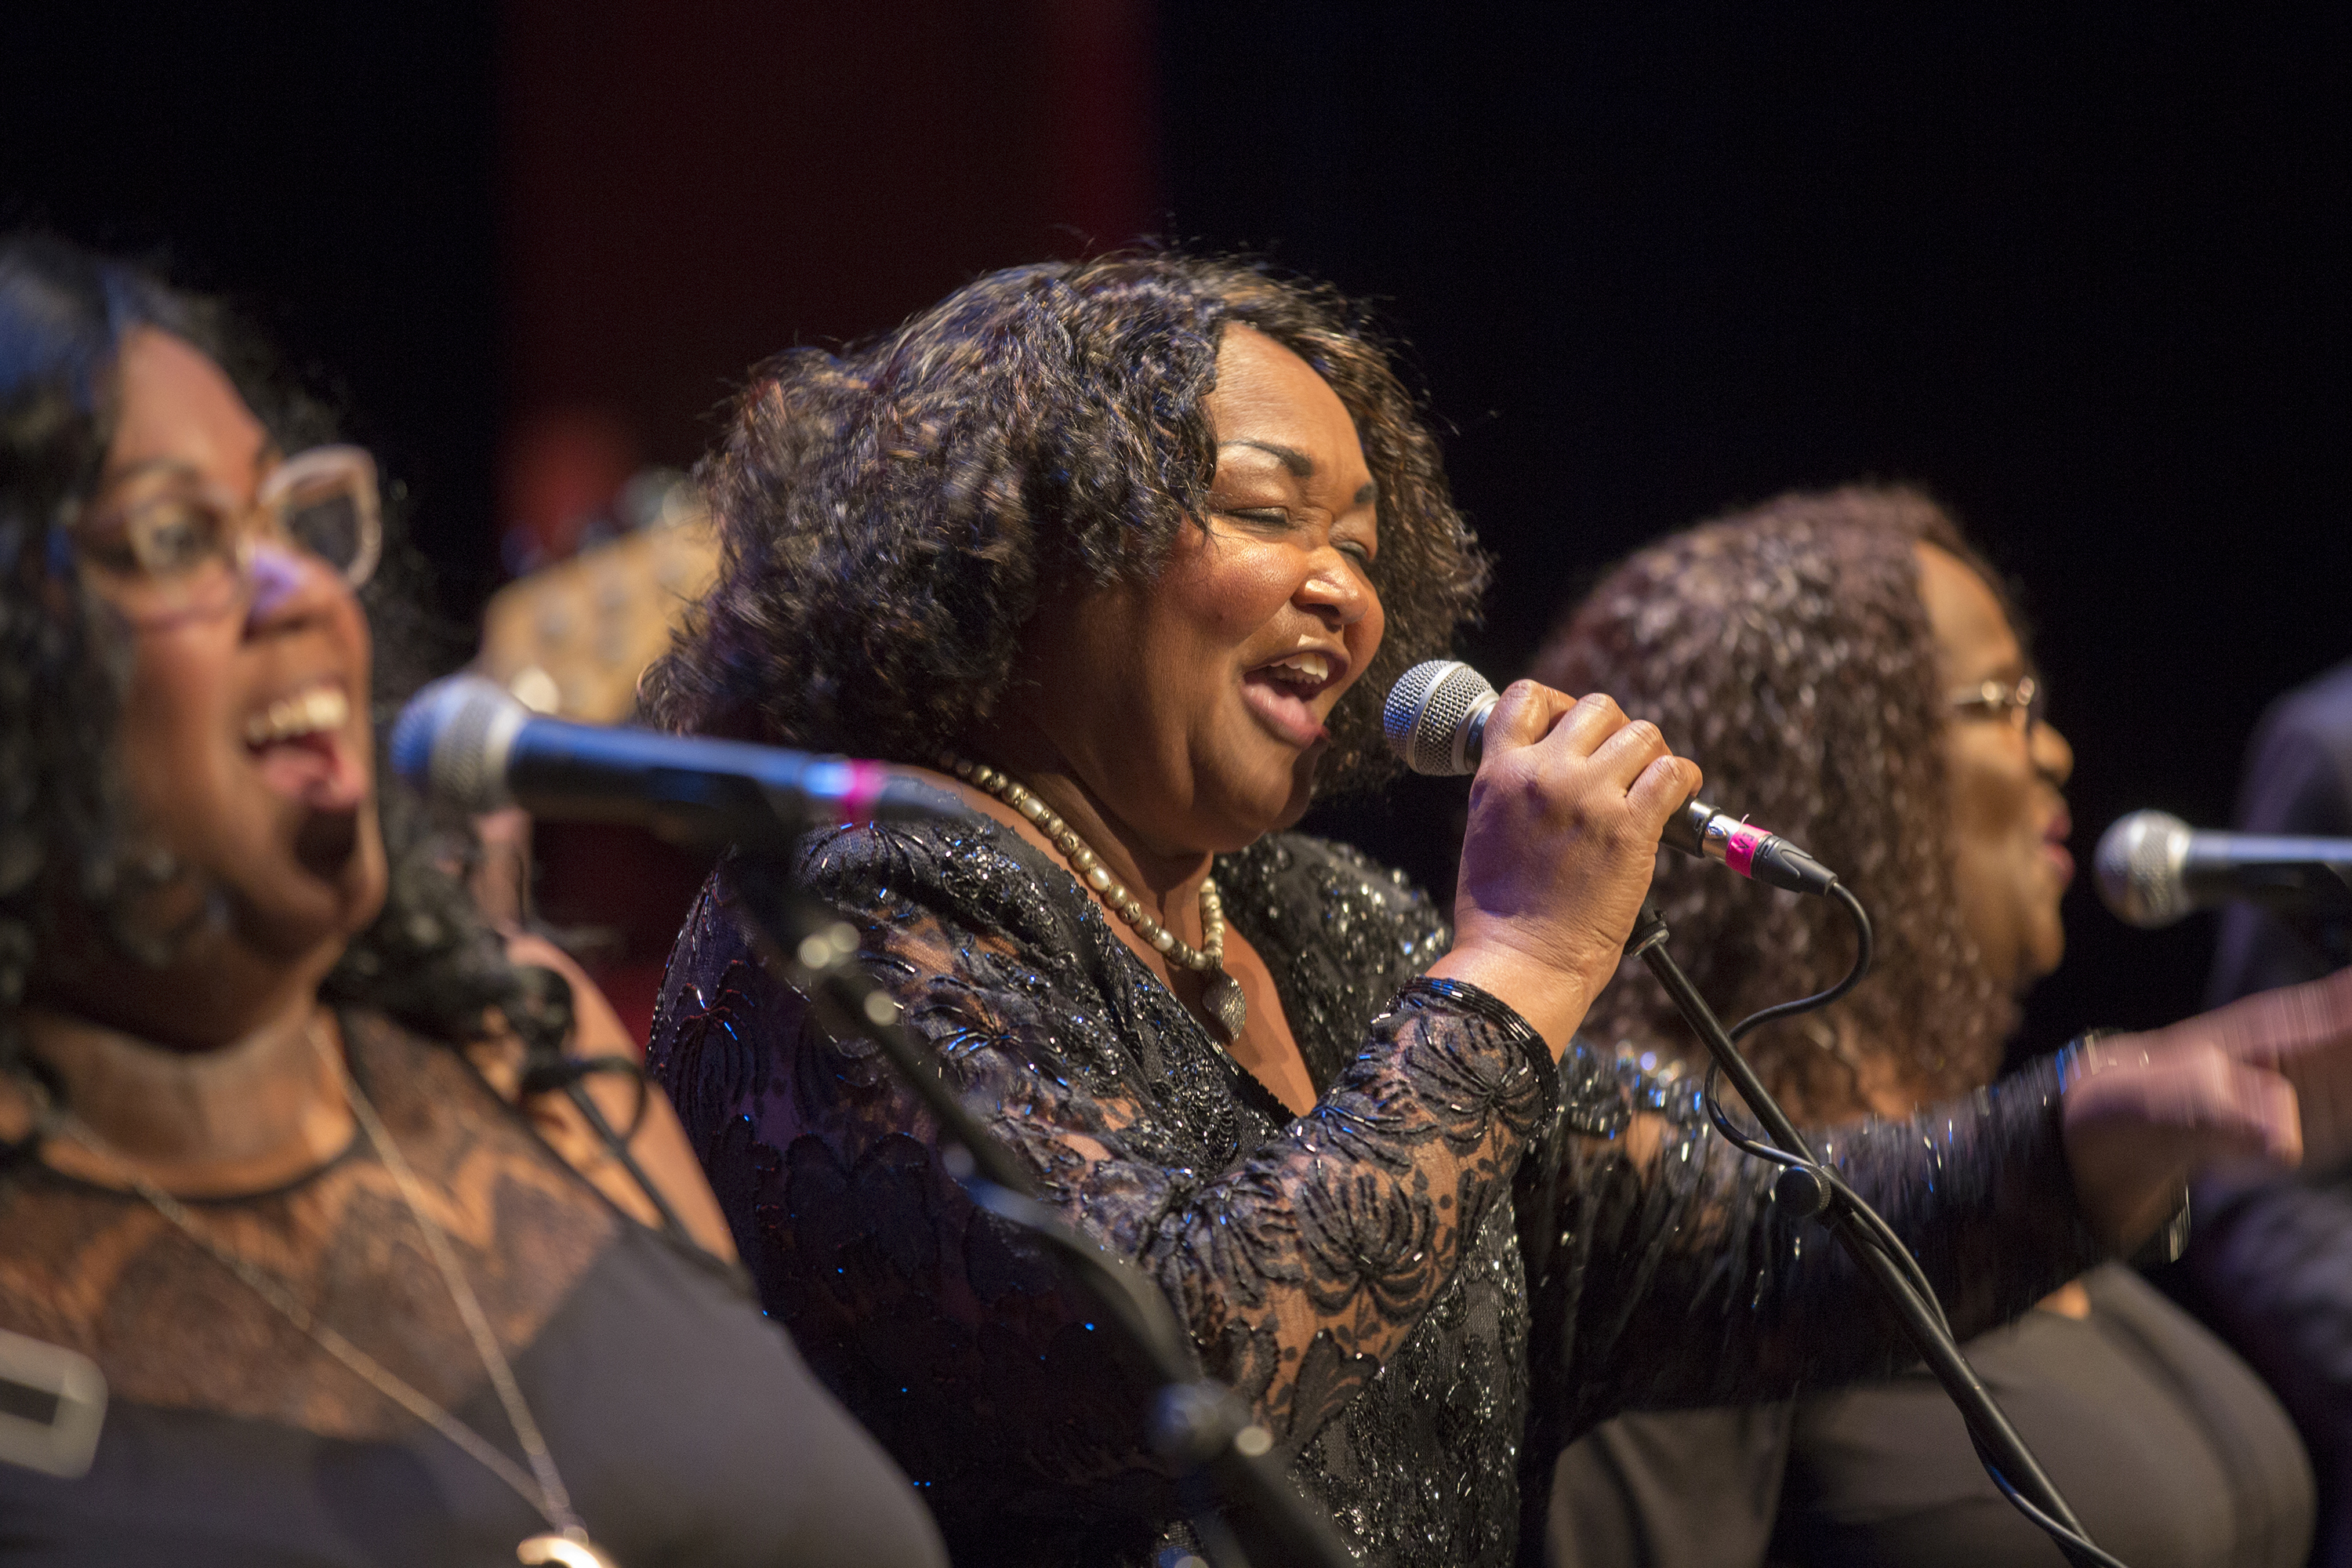 Hazel Miller performs at the third annual Colorado Matters Holiday Extravaganza on Wednesday, Nov. 28, 2018.